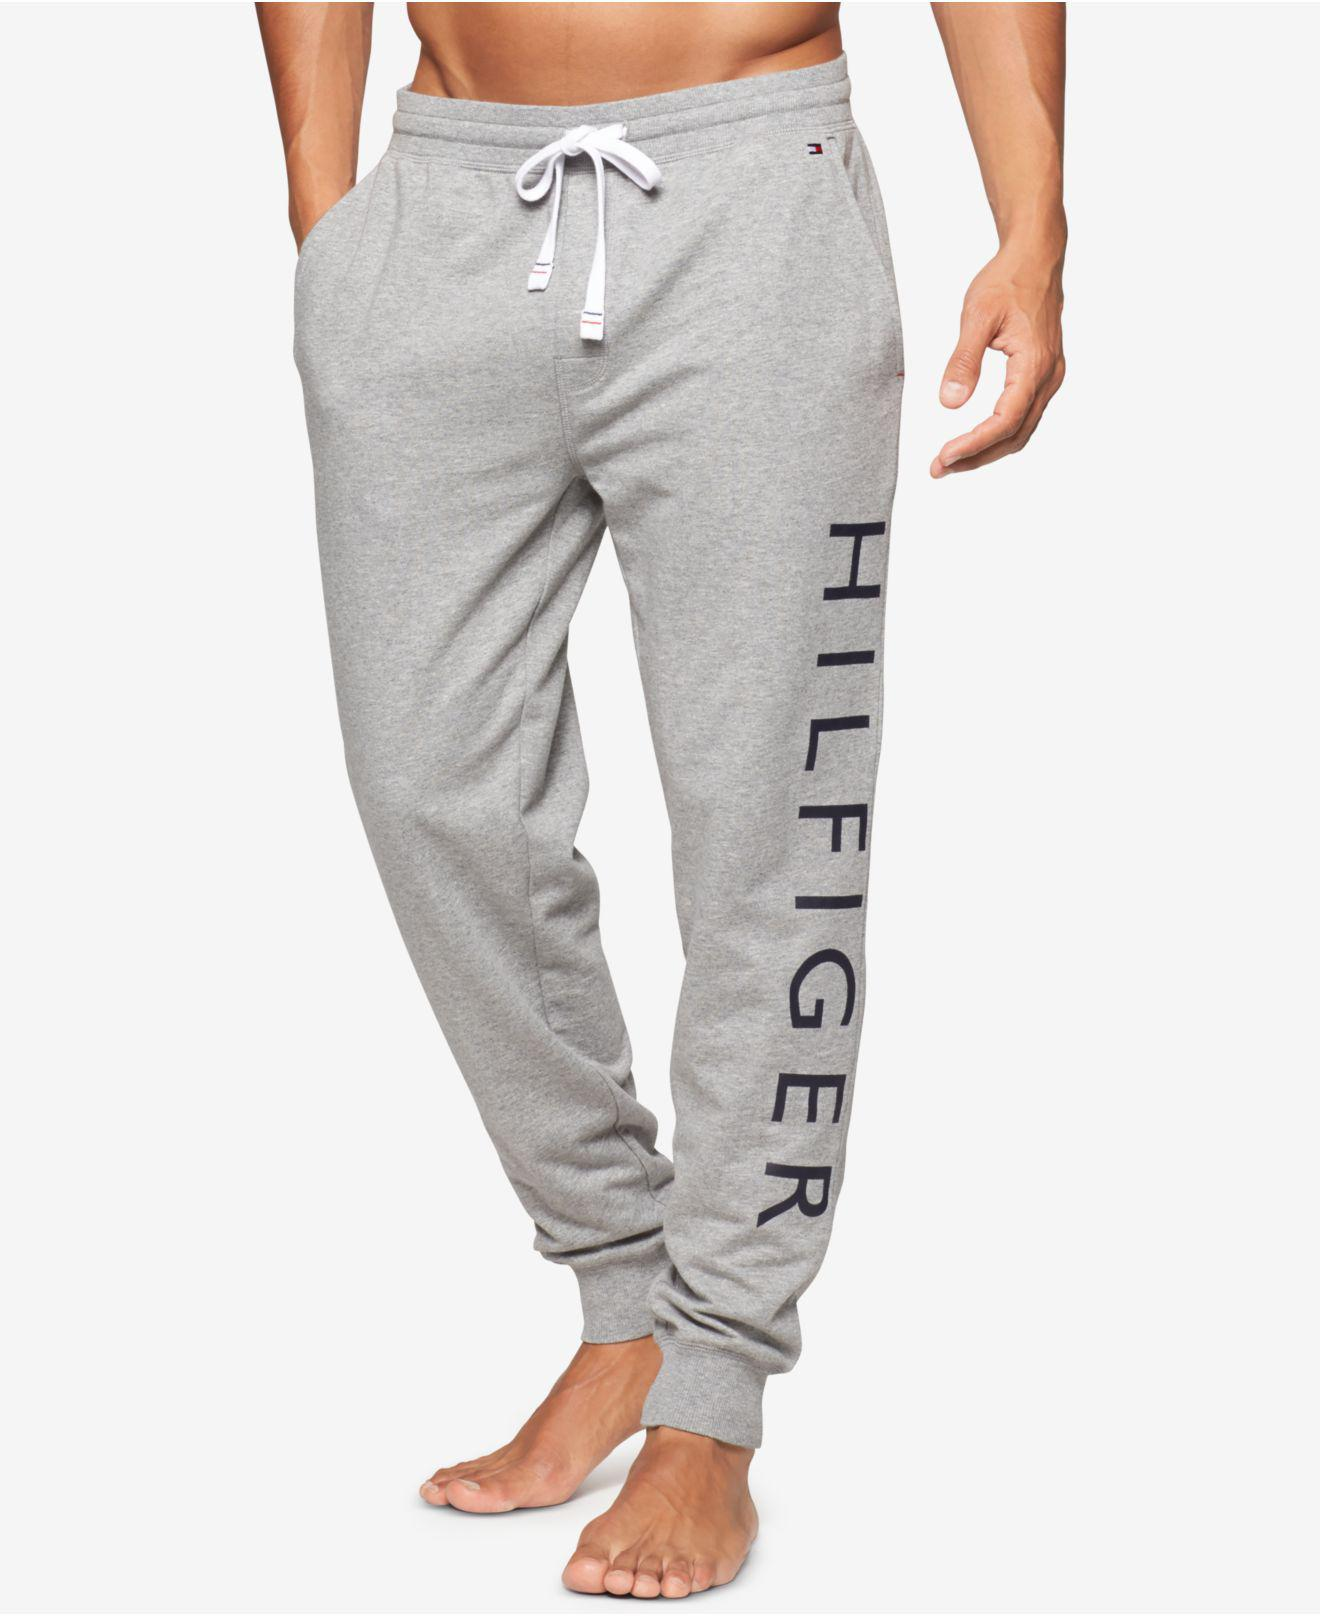 e3d3c5fb Tommy Hilfiger Men's Modern Essential Cotton French Terry Jogger in ...